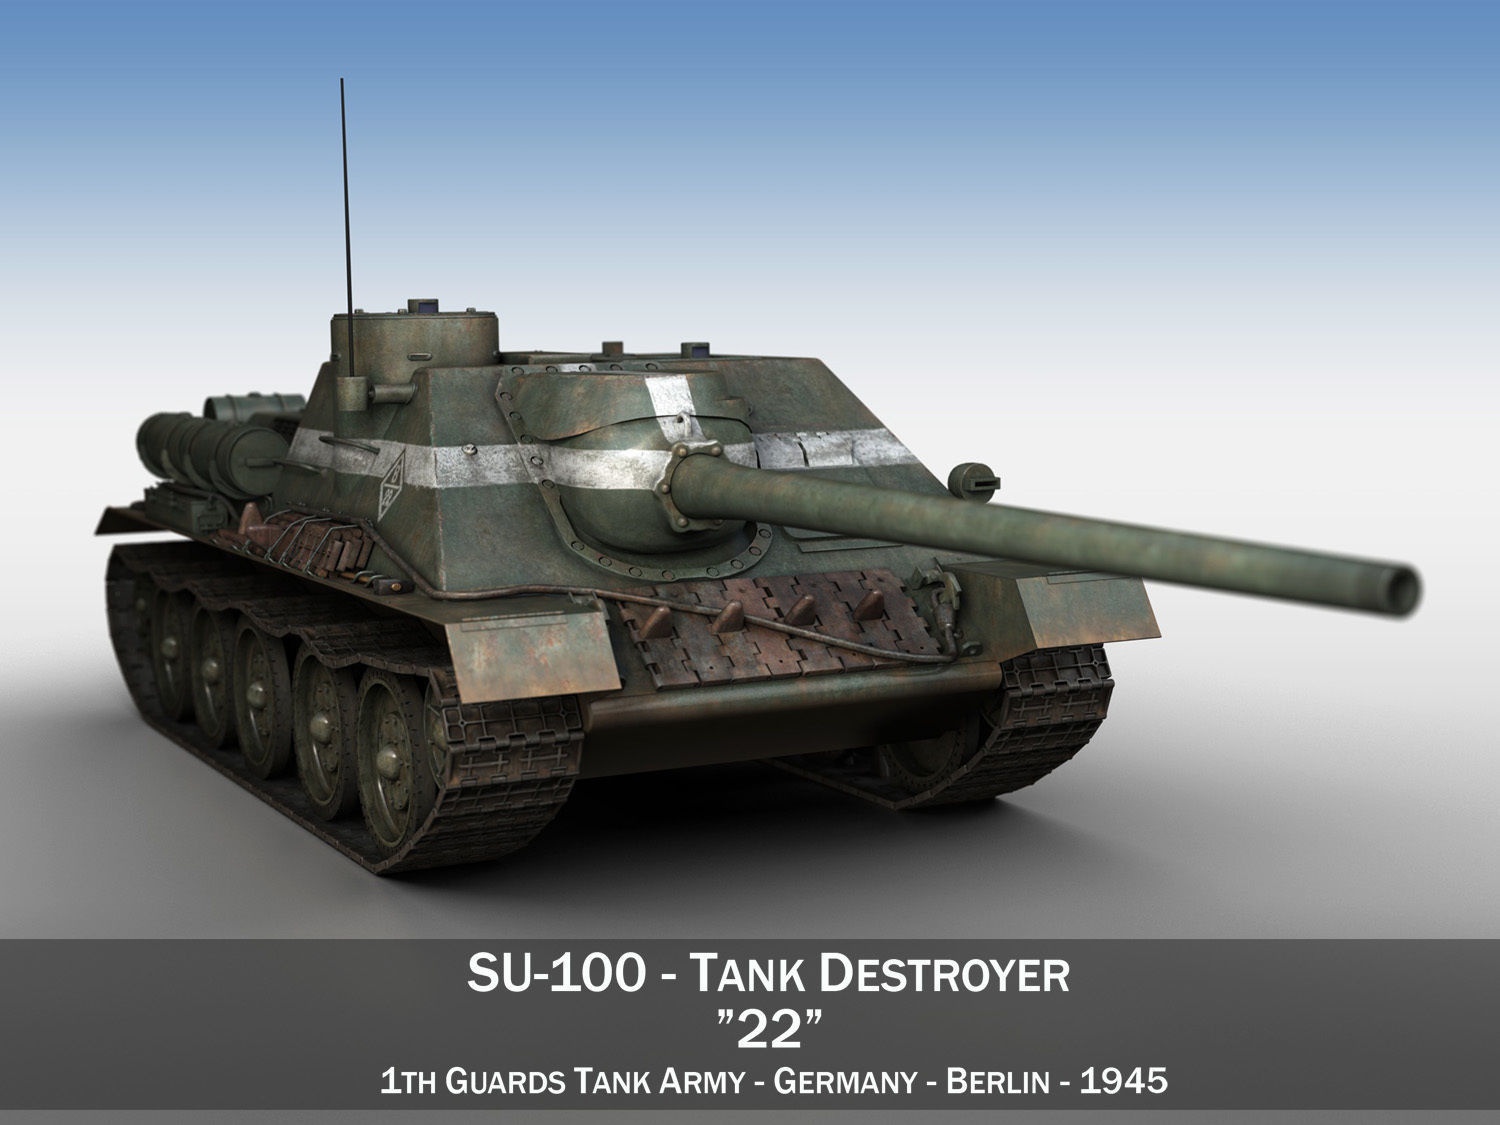 SU-100 - 22 - Soviet Tank Destroyer